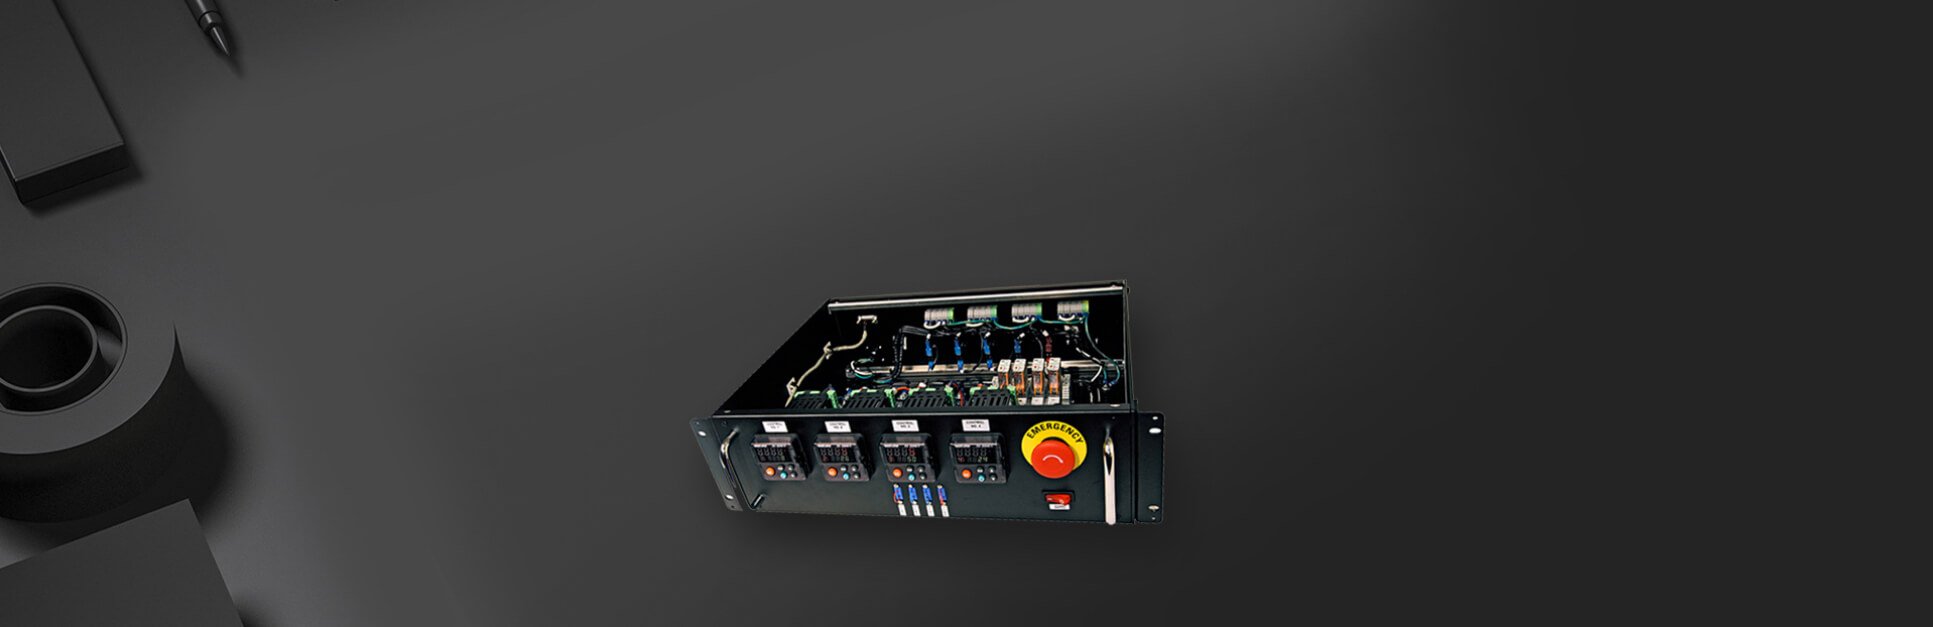 Control Systems - Vertically Integrated Solutions